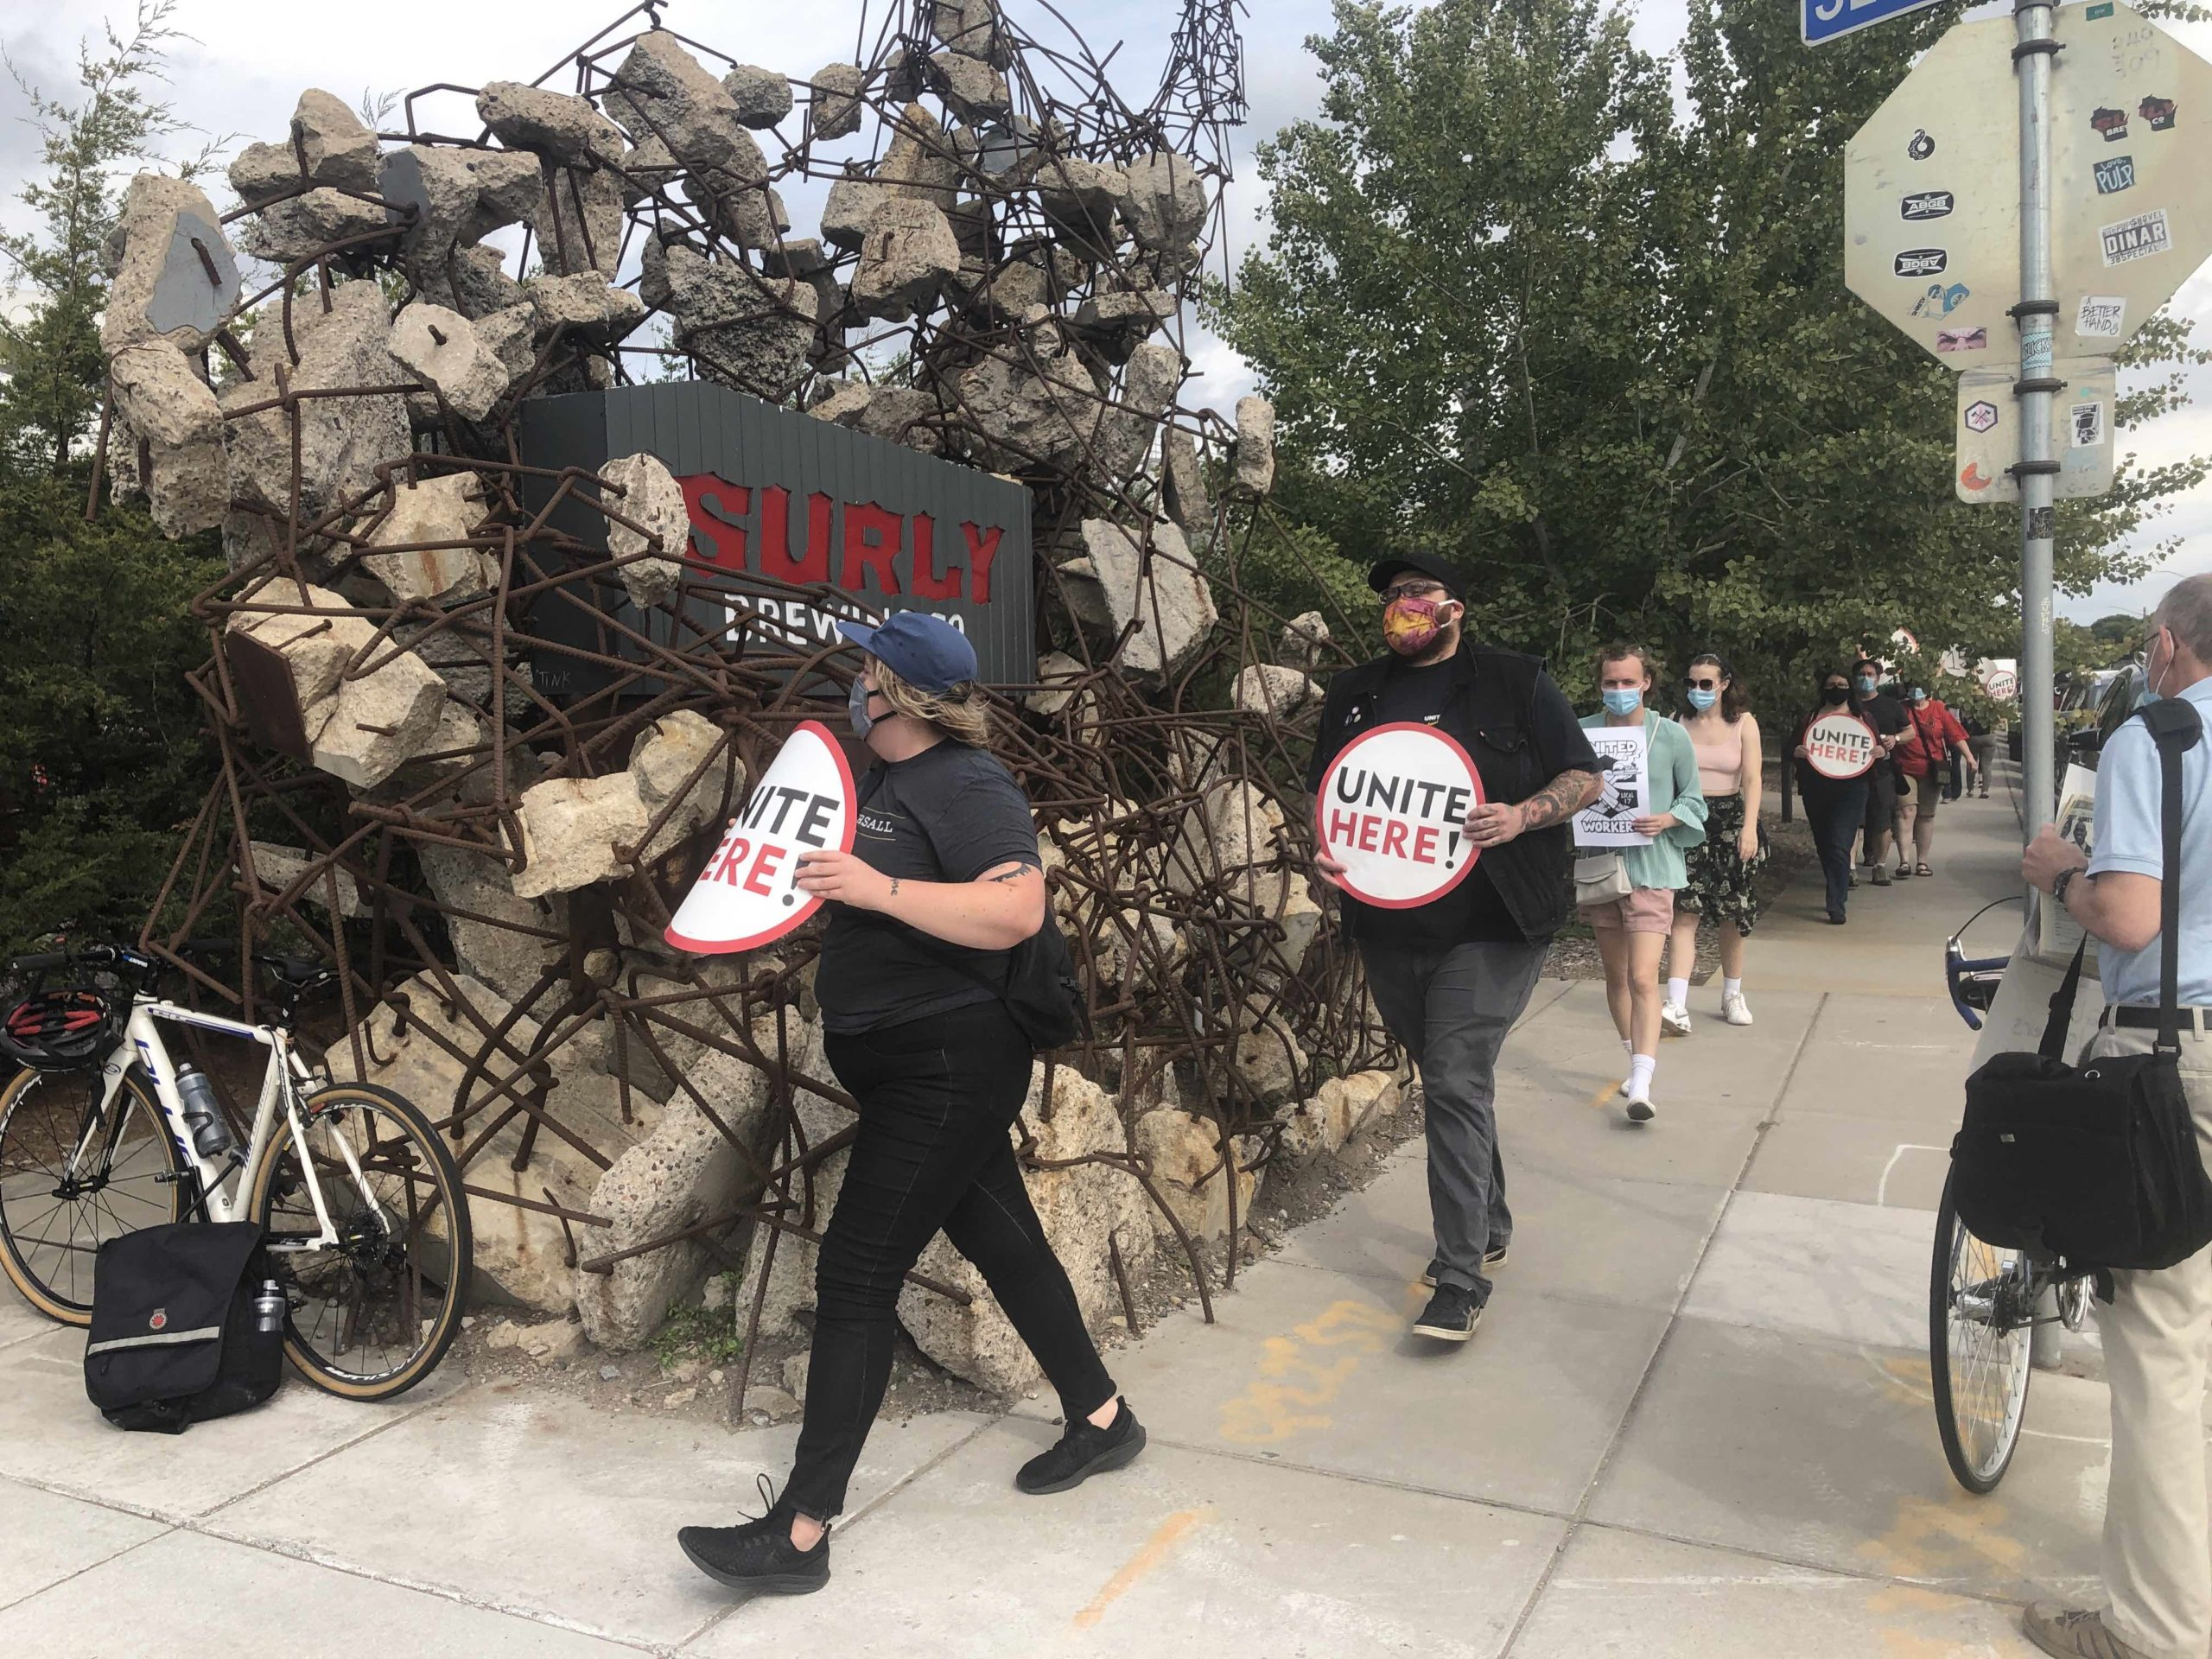 Surly Worker Protest